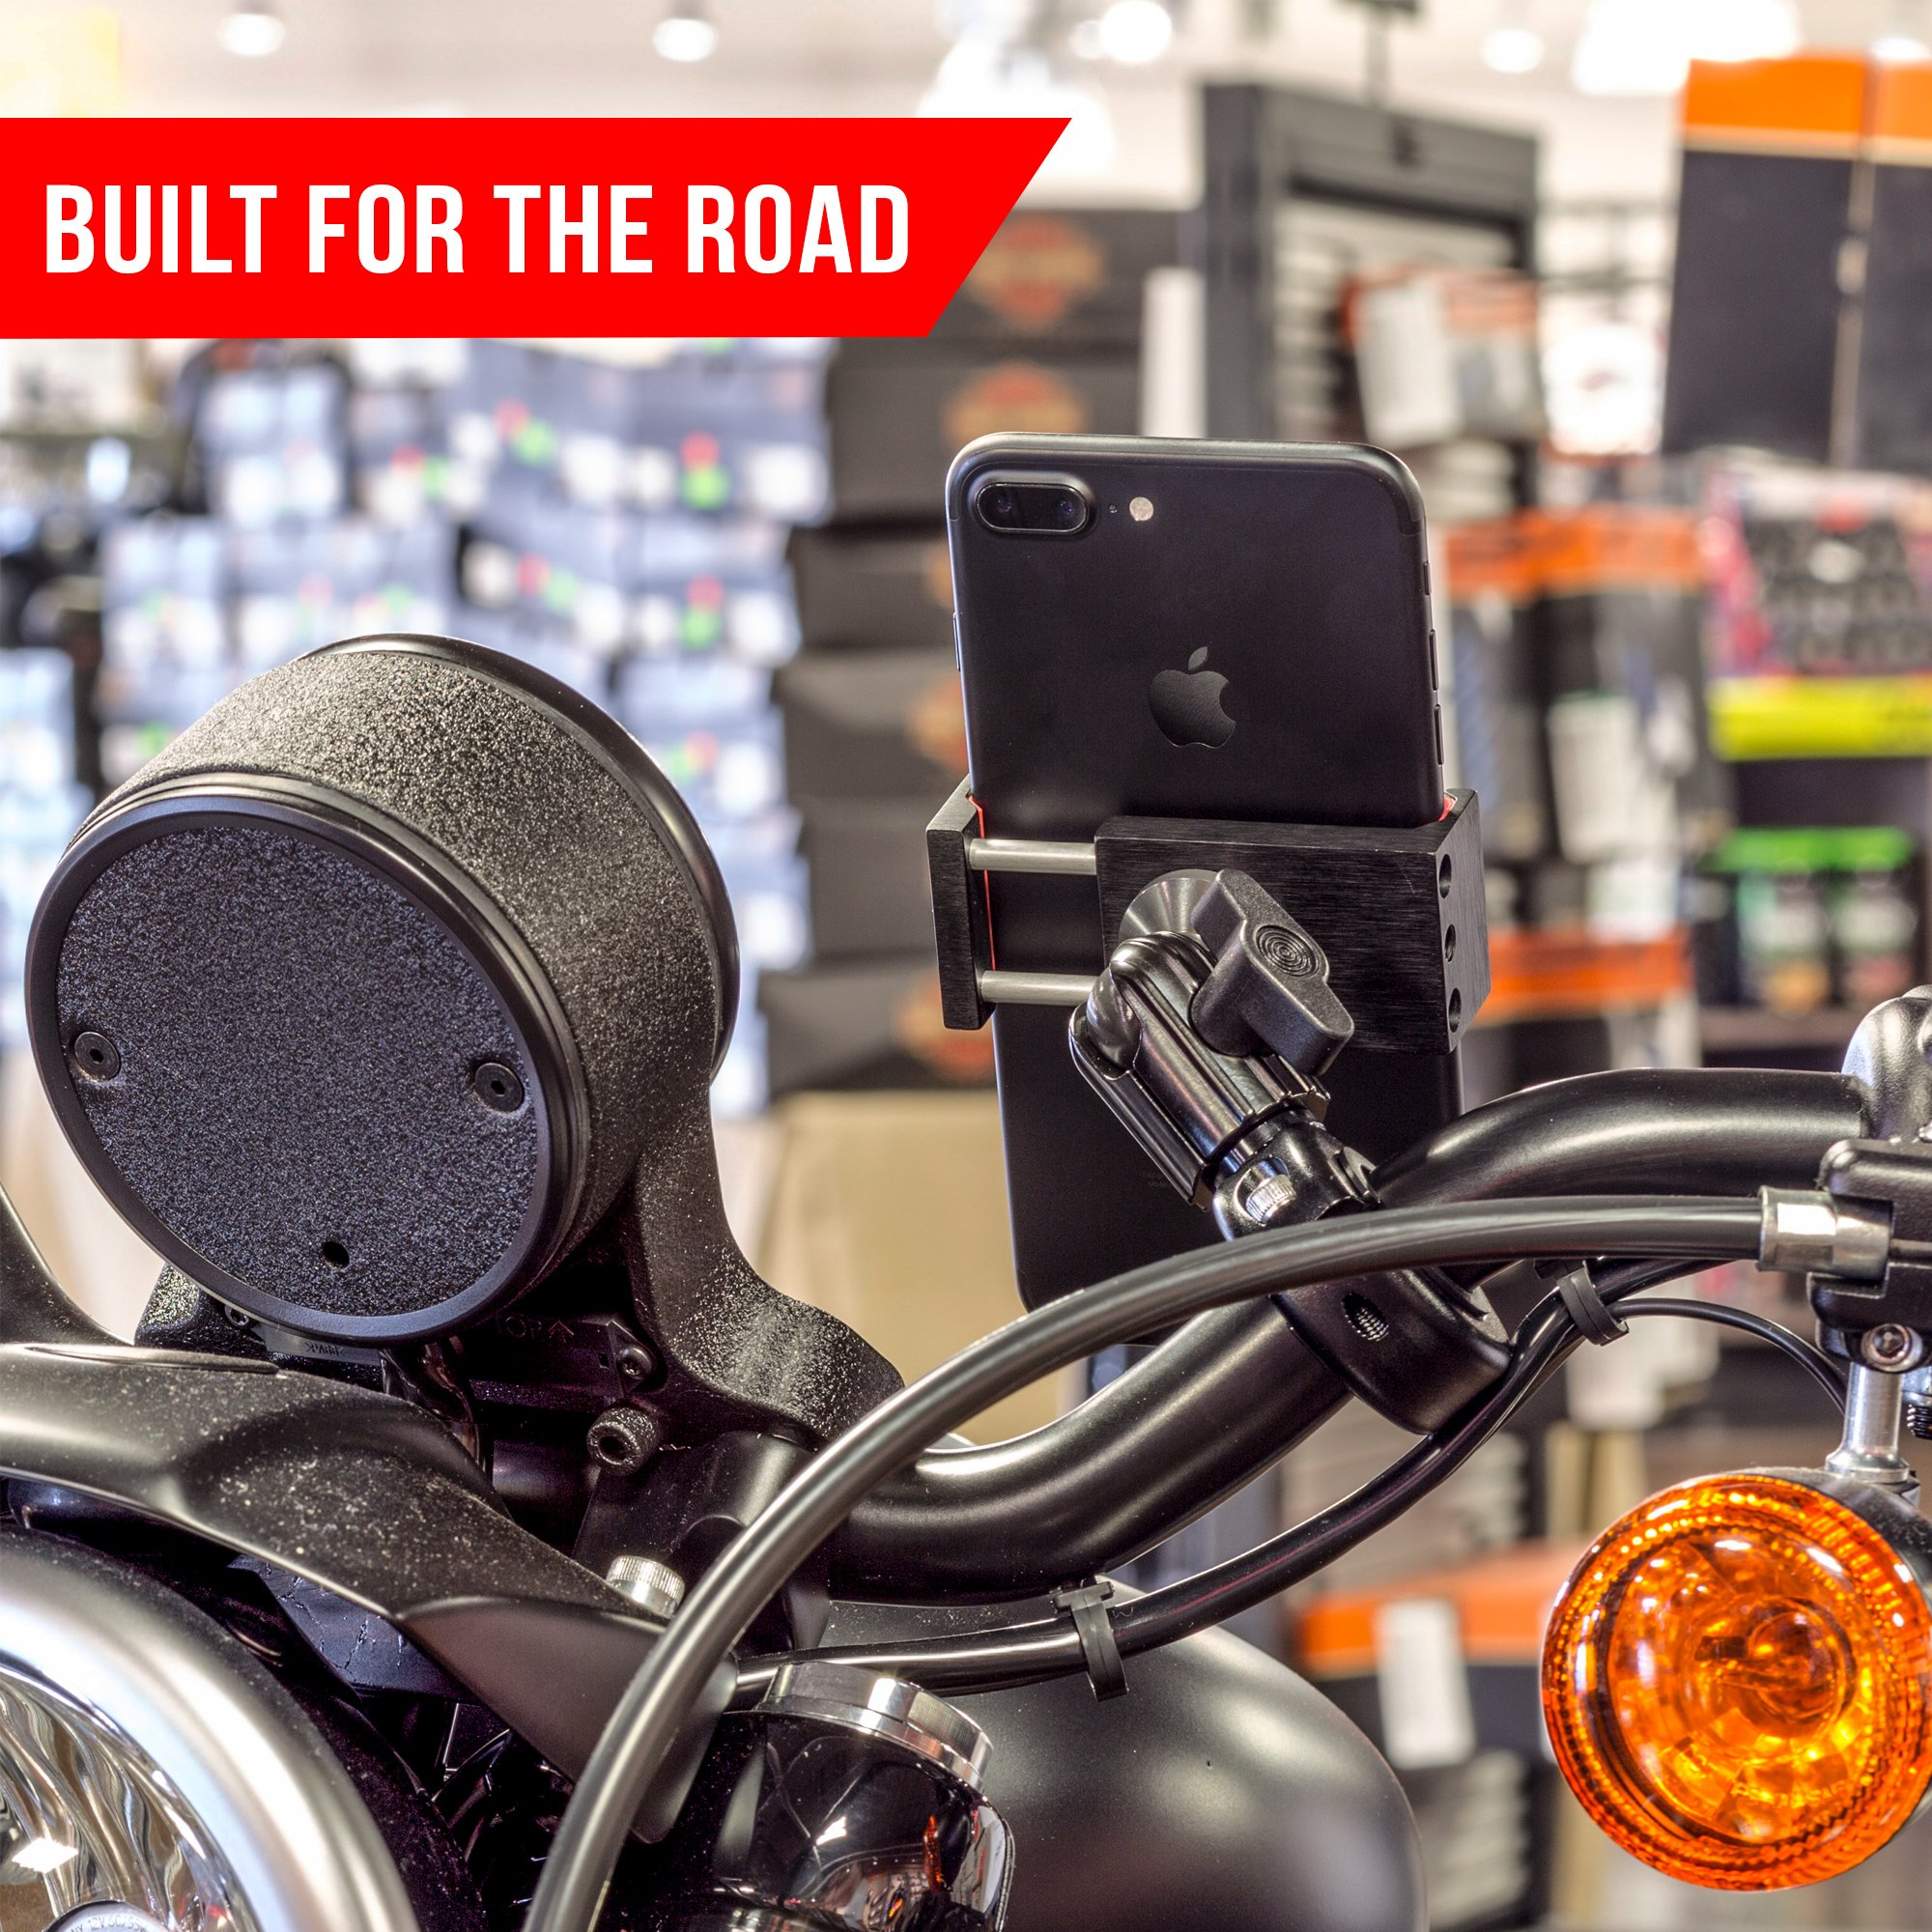 Metal Motorcycle Mount for Phone - by TACKFORM [Enduro Series] - NO SLINGS NEEDED. Rock solid holder for Regular and Plus sized iPhone and Samsung devices. Industrial Spring Grip by Tackform Solutions (Image #5)